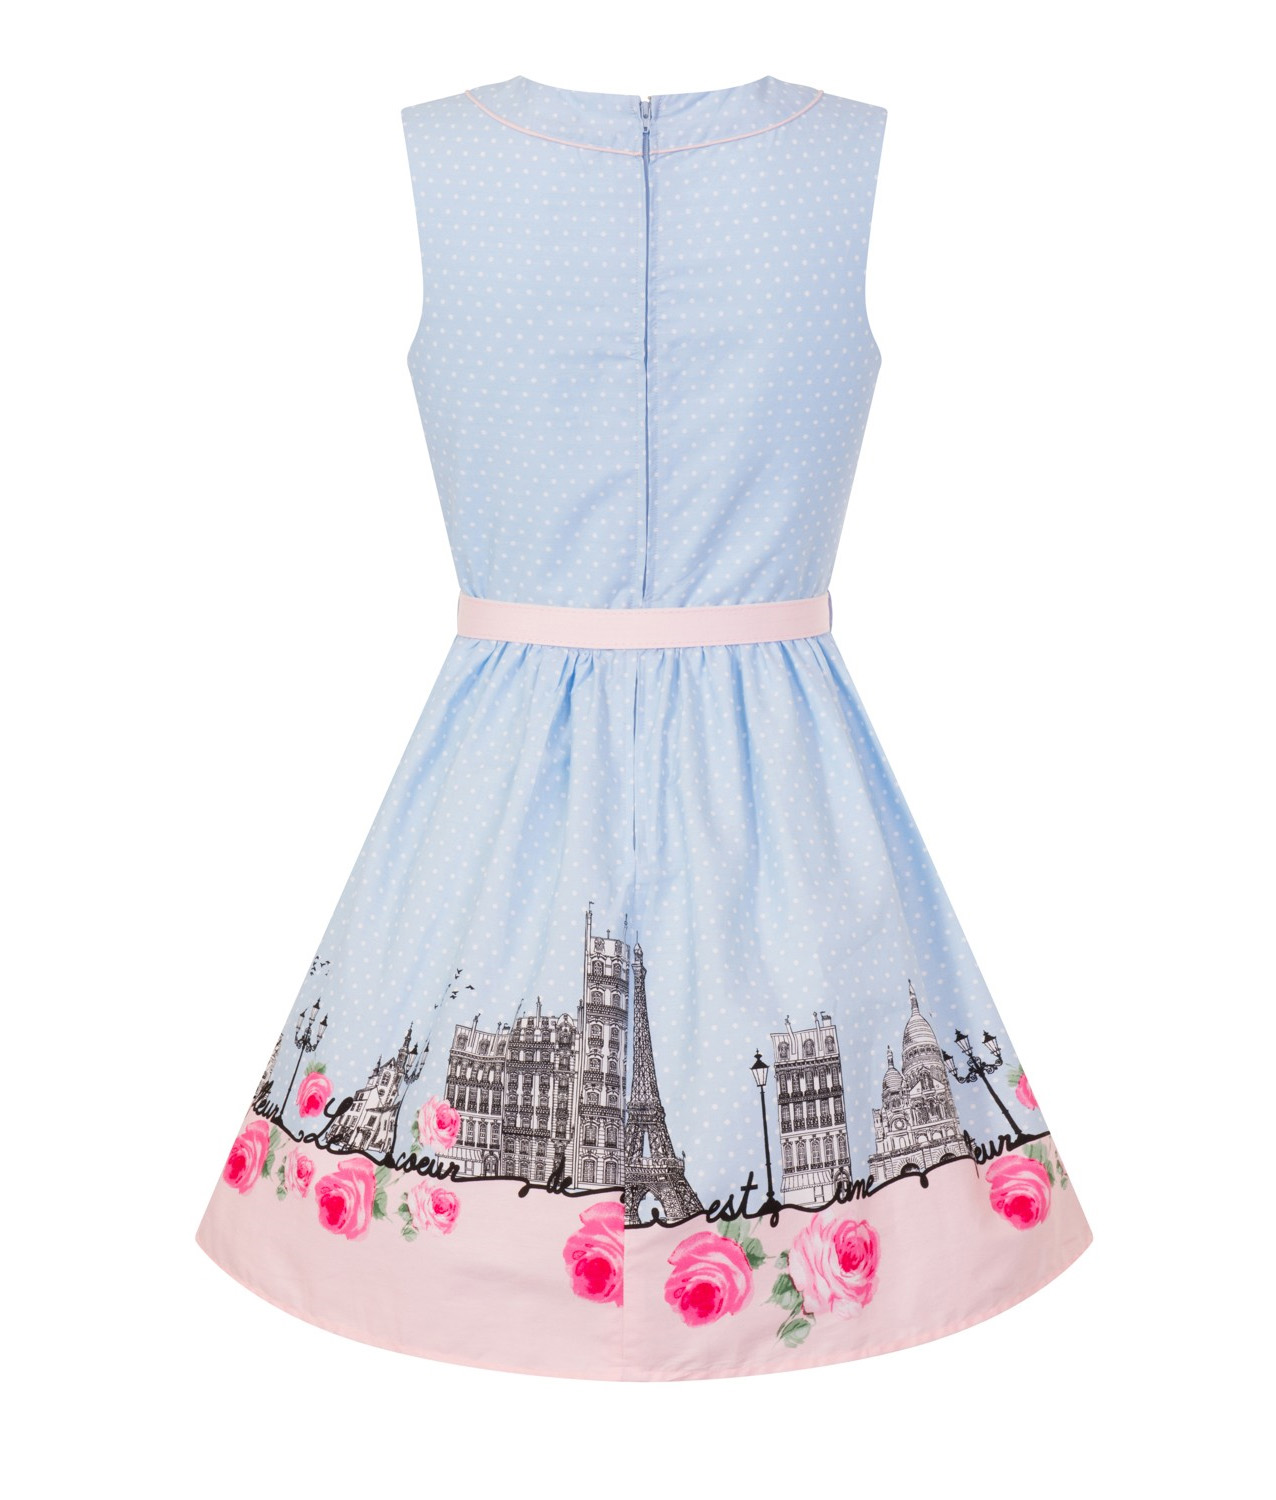 Hell-Bunny-50s-Vintage-Blue-Polka-Dot-PANAME-Mini-Dress-Paris-All-Sizes thumbnail 25